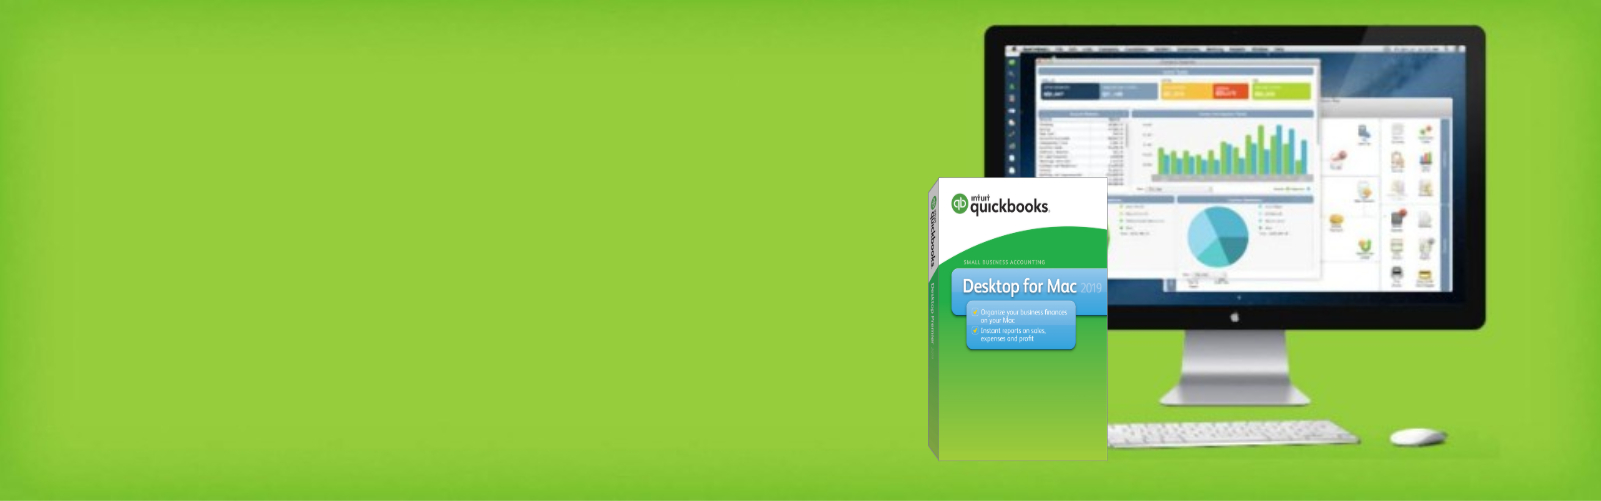 Is Quickbooks For Mac Compatible With Mavericks